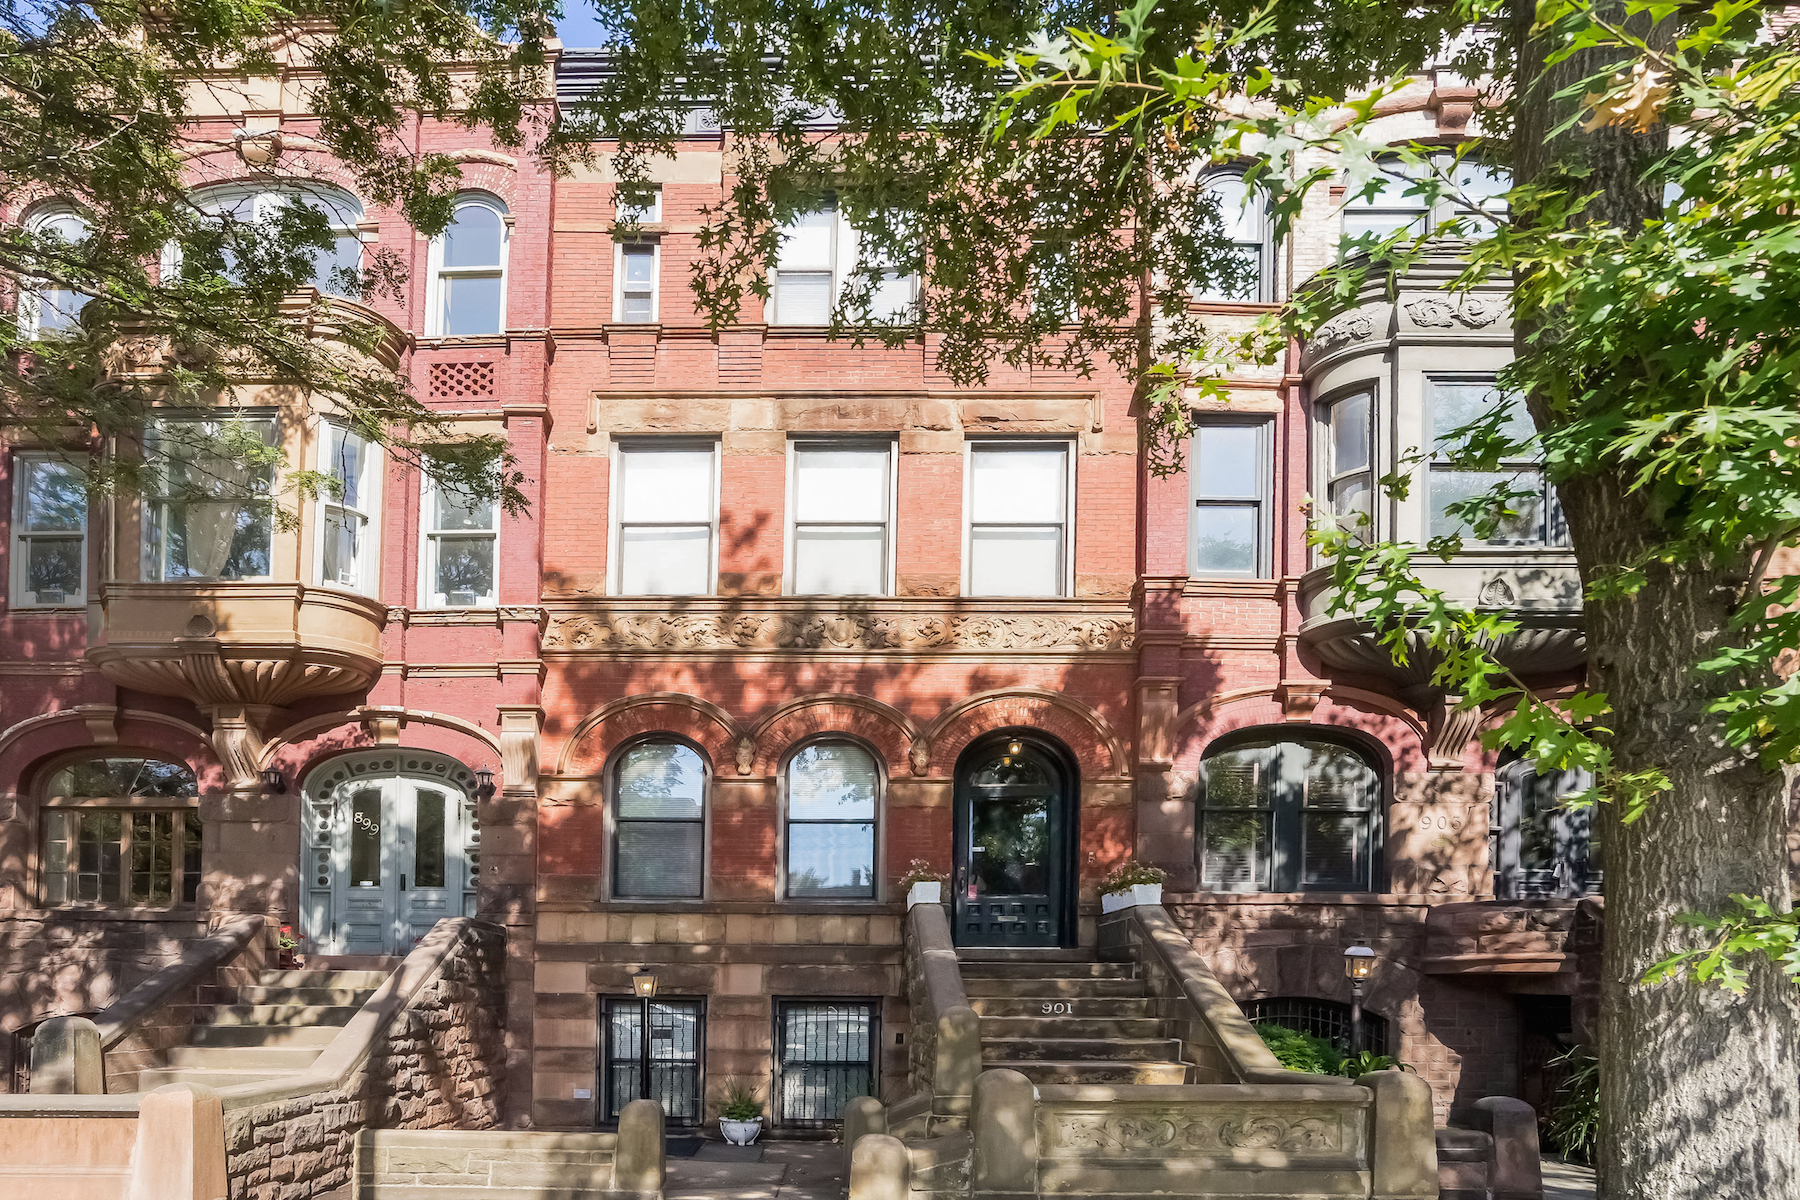 Multi-Family Home for Sale at Elegant Queen Anne Townhome in Park Slope 901 Union Street Brooklyn, New York 11215 United States